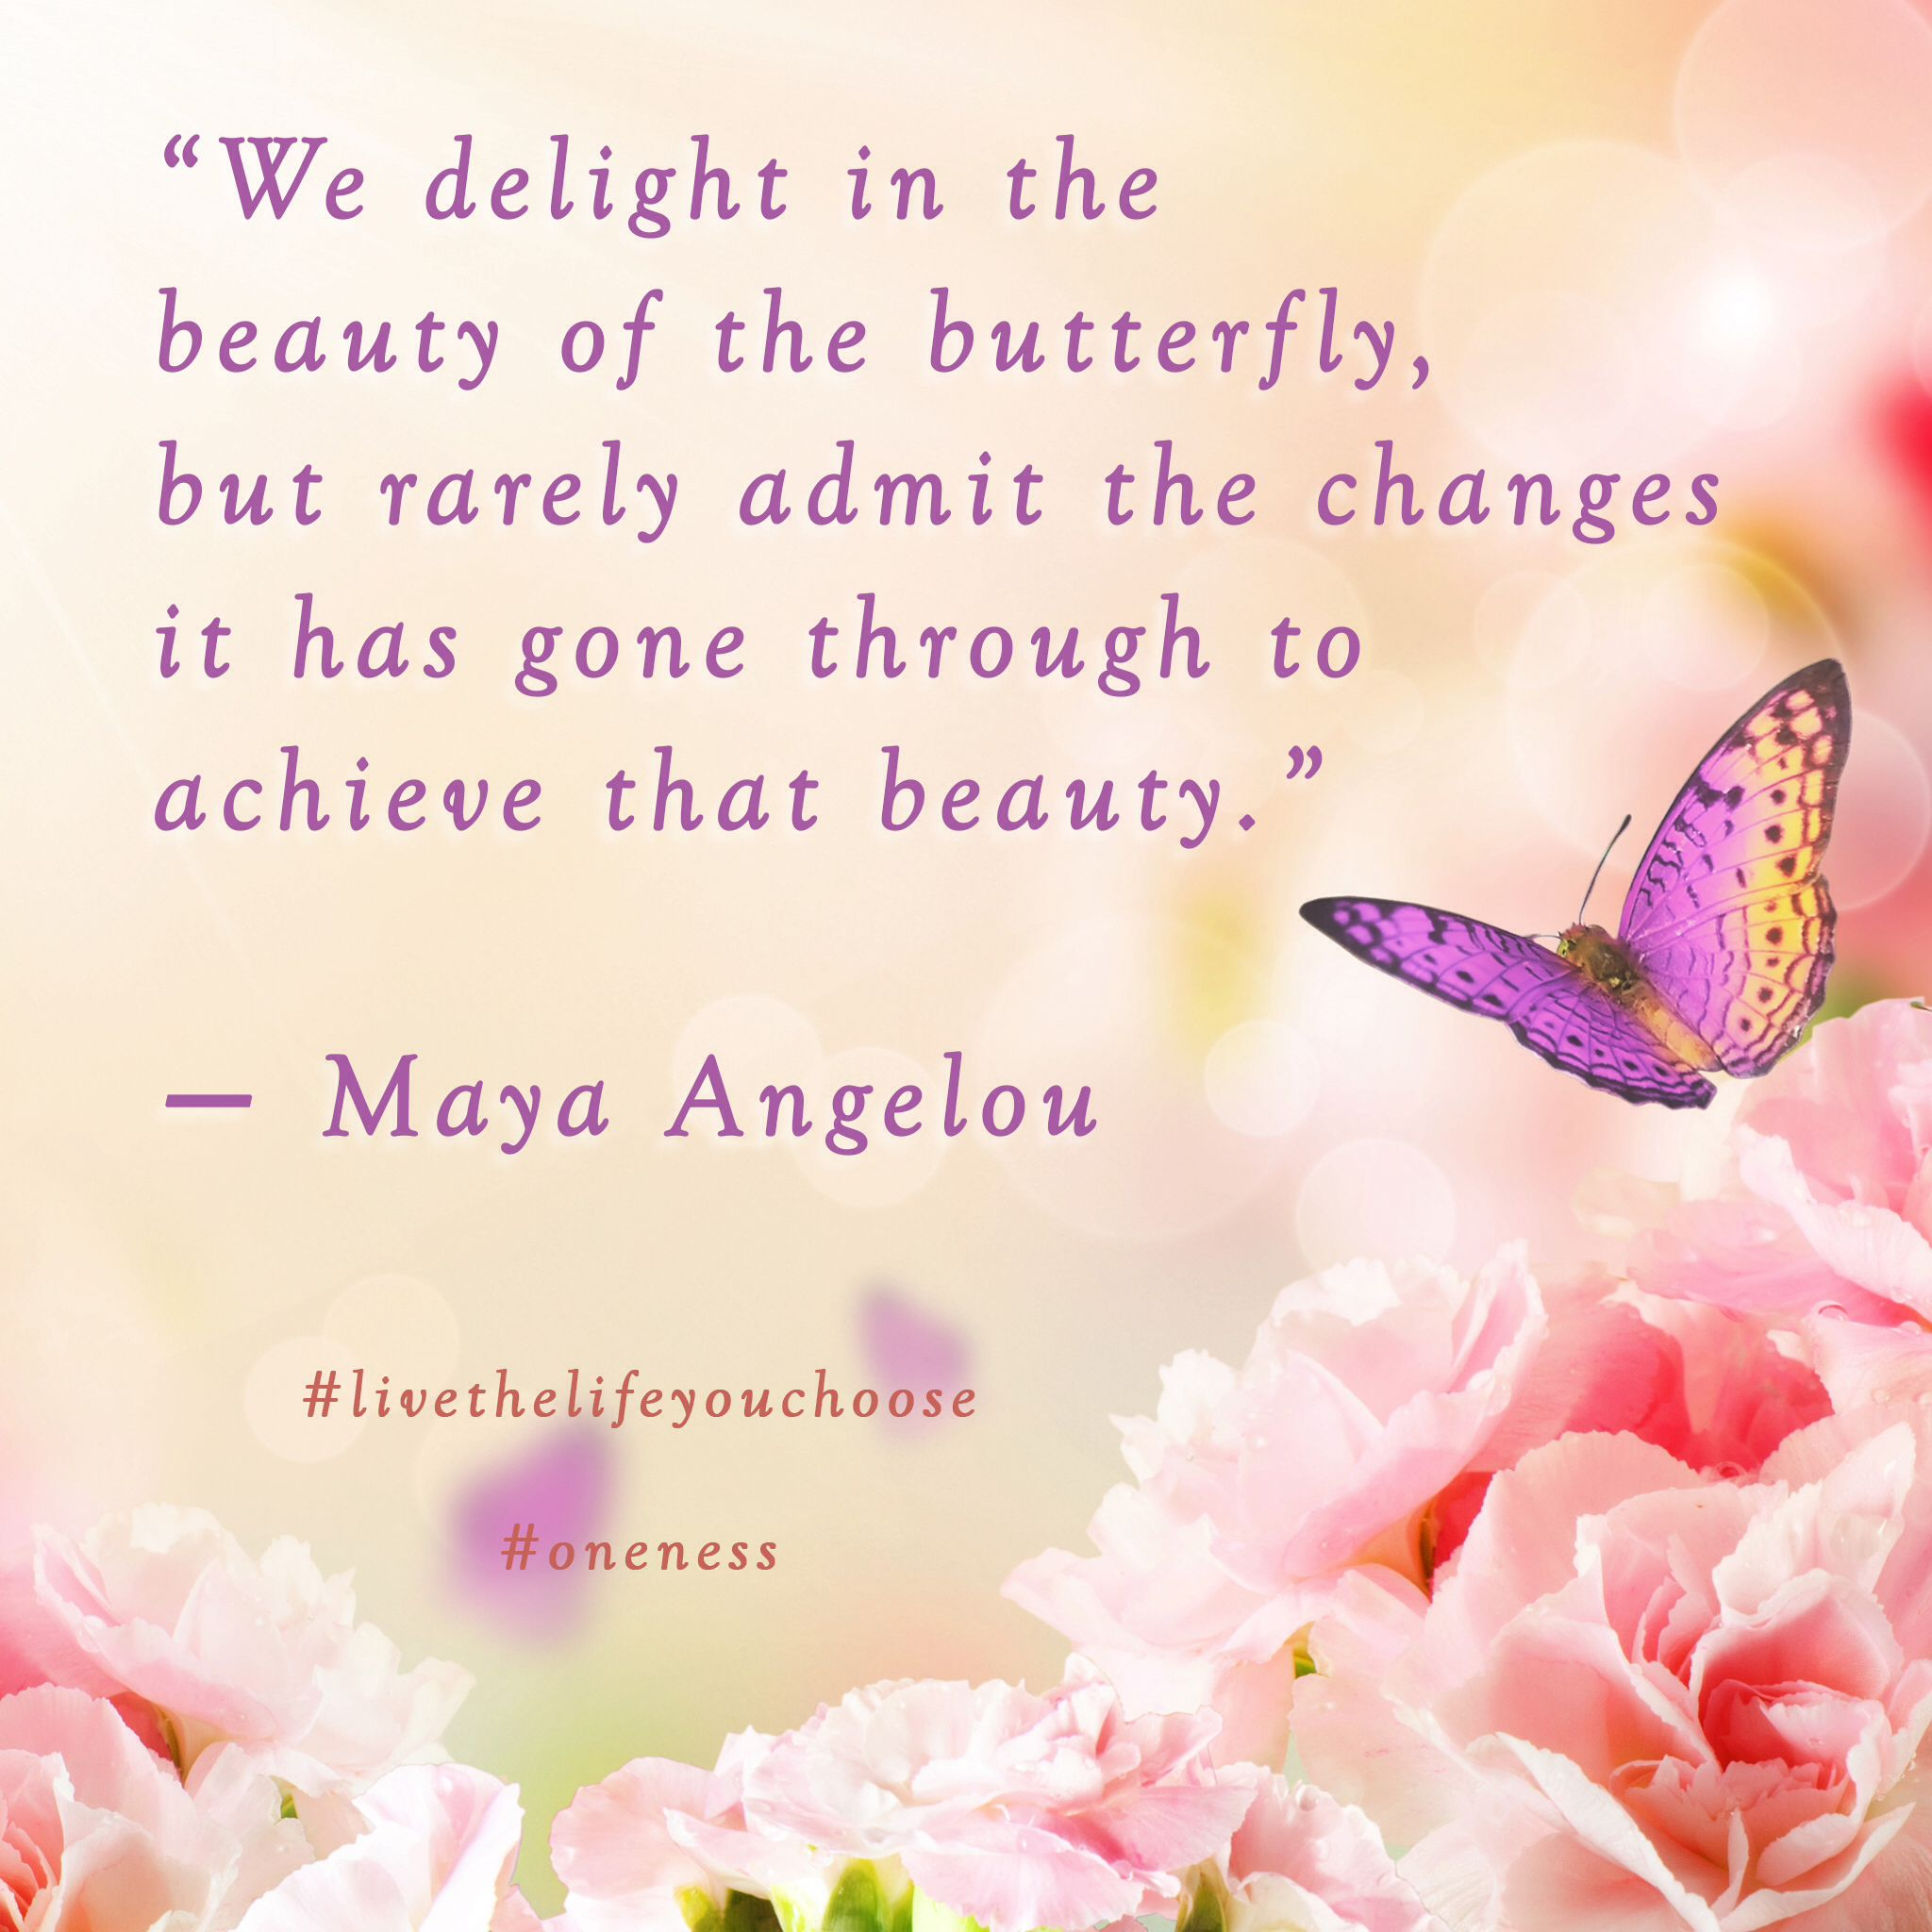 We delight in the beauty of the butterfly but rarely admit the thoughts kristyandbryce Images